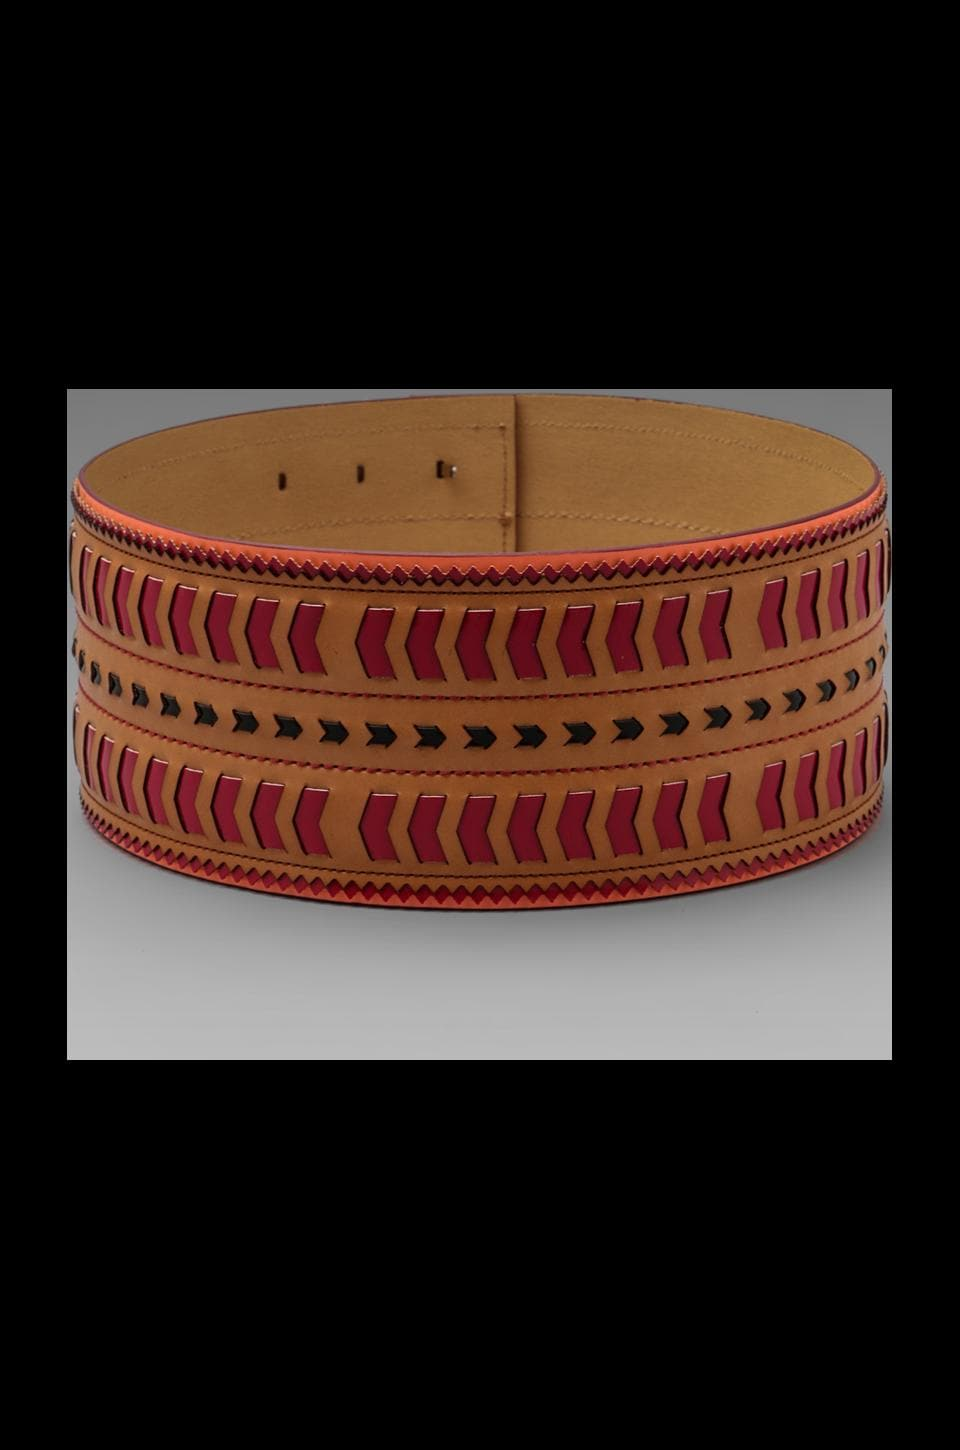 Nanette Lepore Tribal Woven Waist Belt in Vachetta